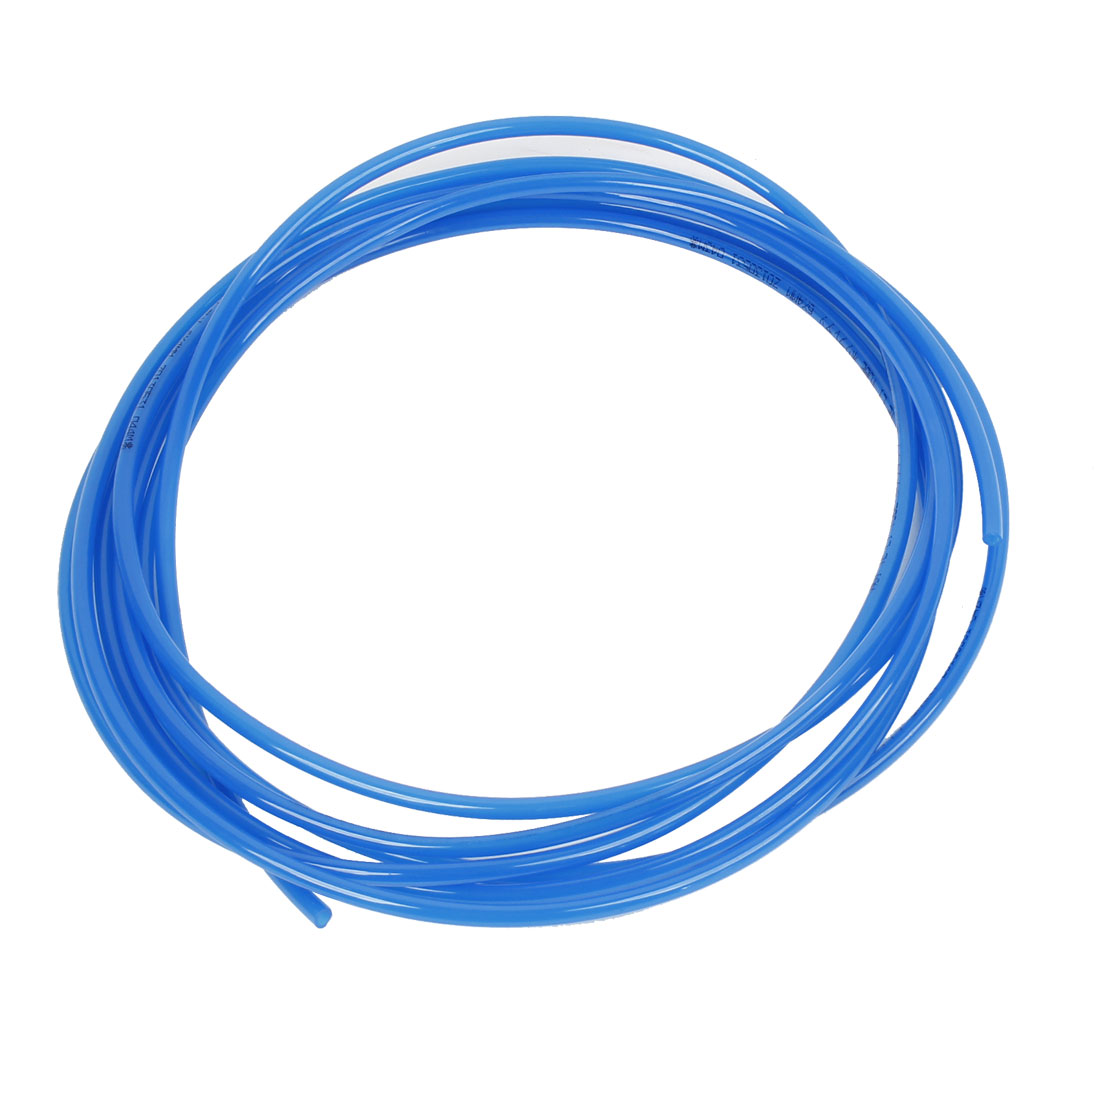 5 Meter 16.4Ft 6 x 4mm Pneumatic Air PU Hose Pipe Tube Blue